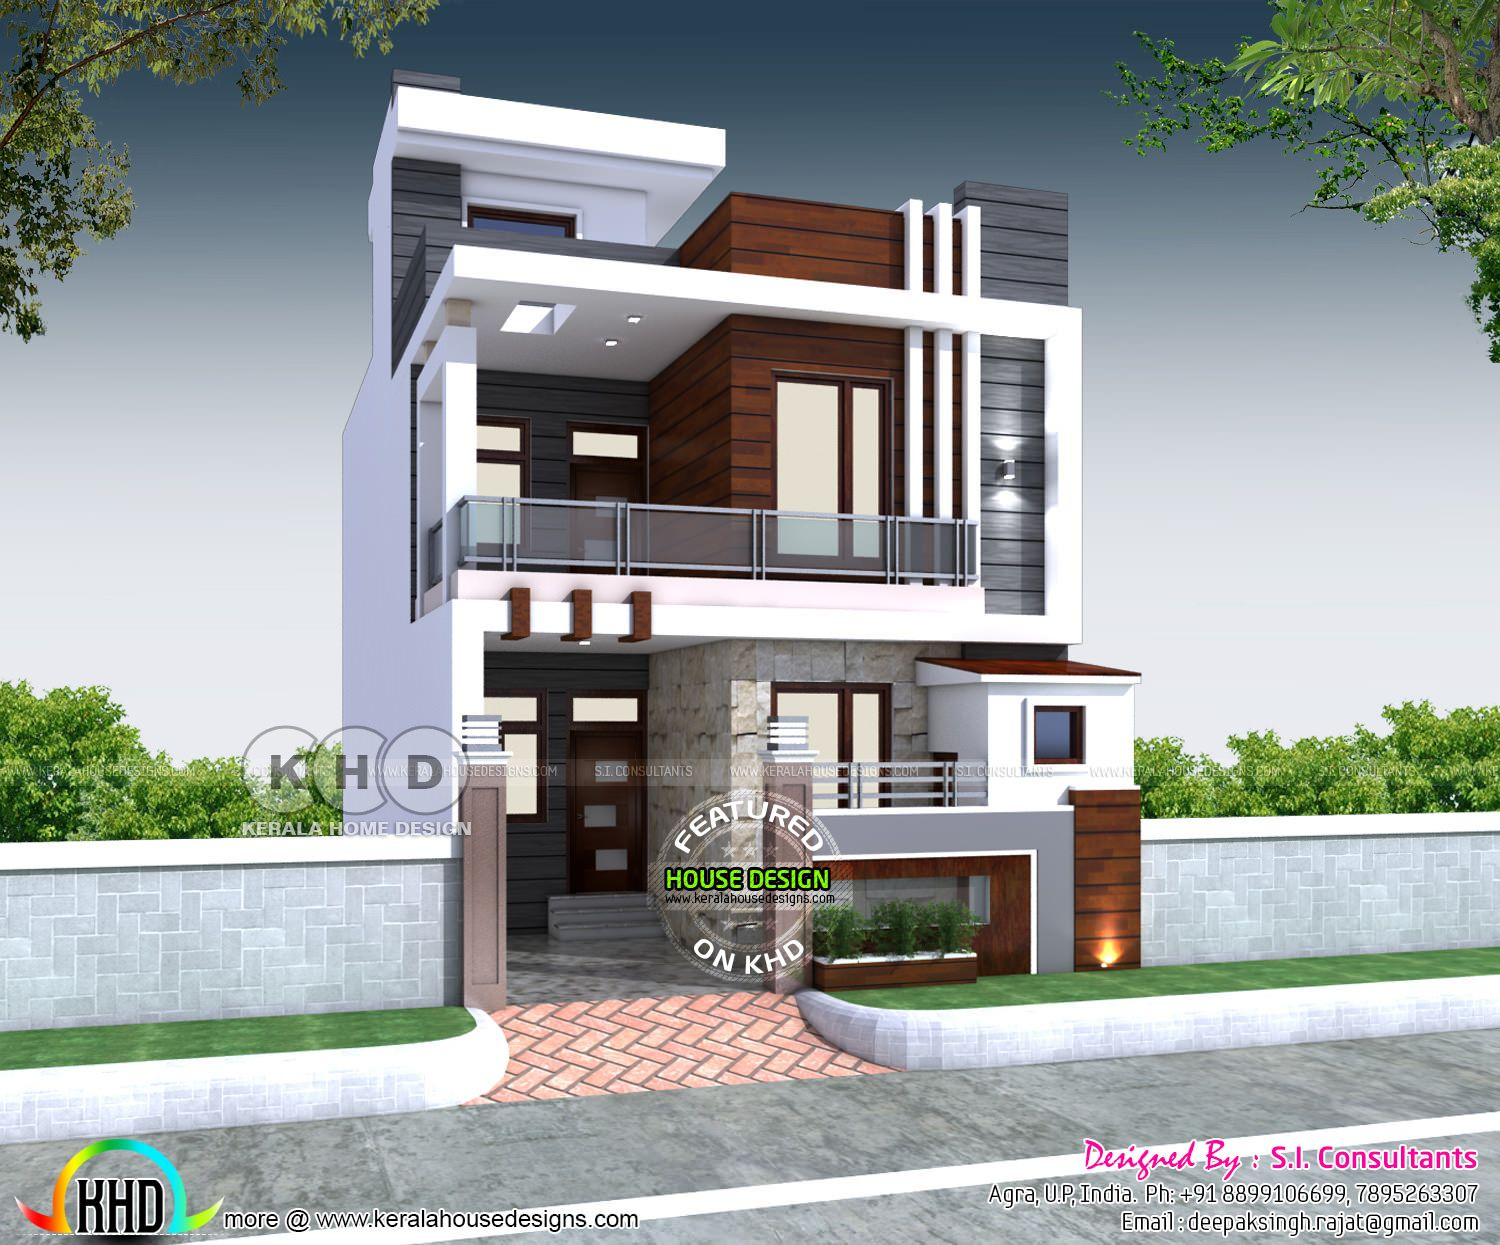 23 X 55 House Plan With 3 Bedrooms Fachadas In 2019